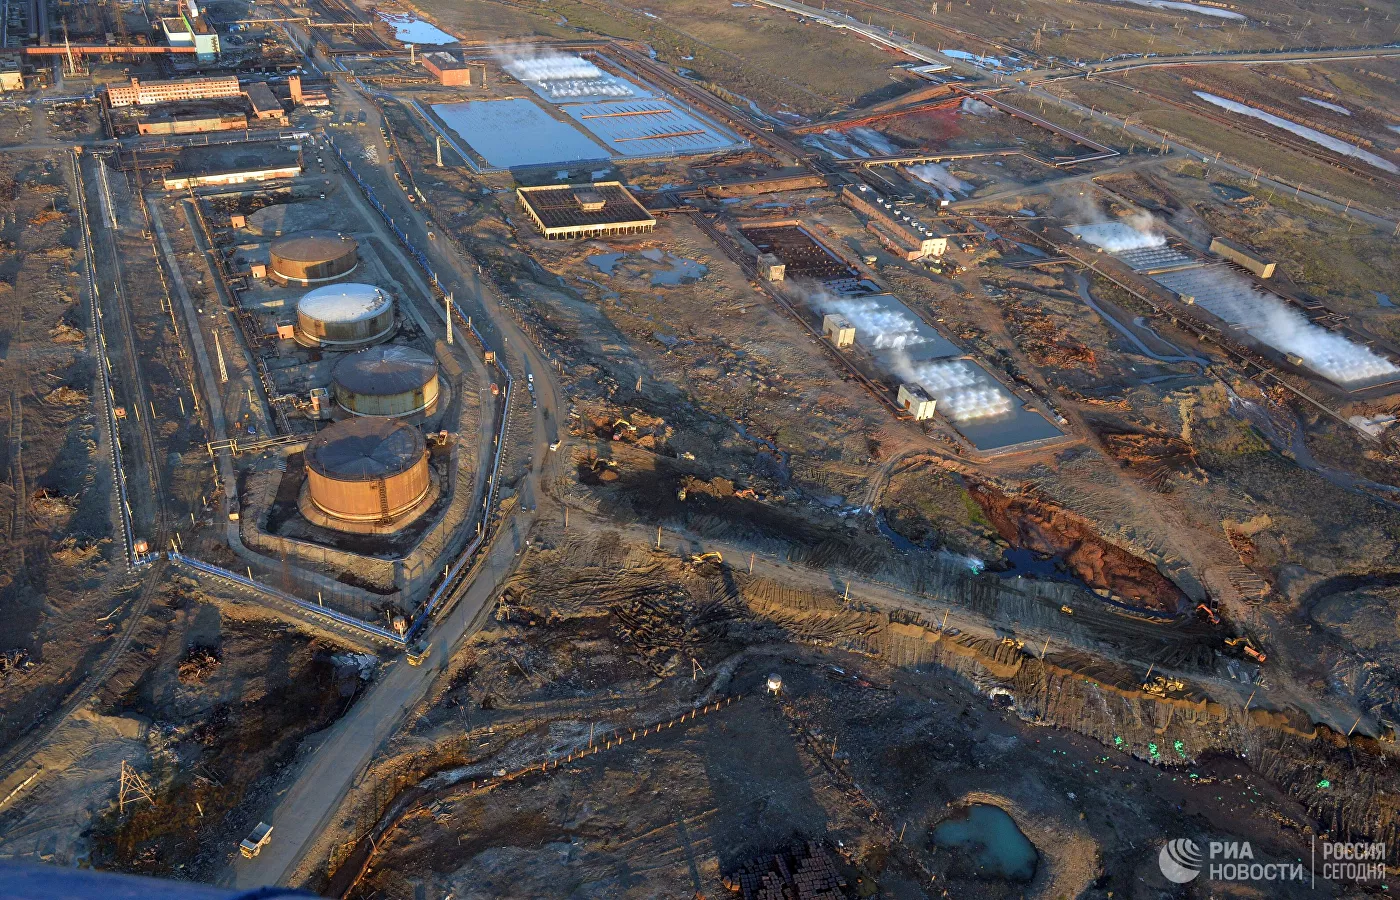 Russia Arrests Three After Massive Diesel Spill From Norilsk Nickel Power Plant In Siberia